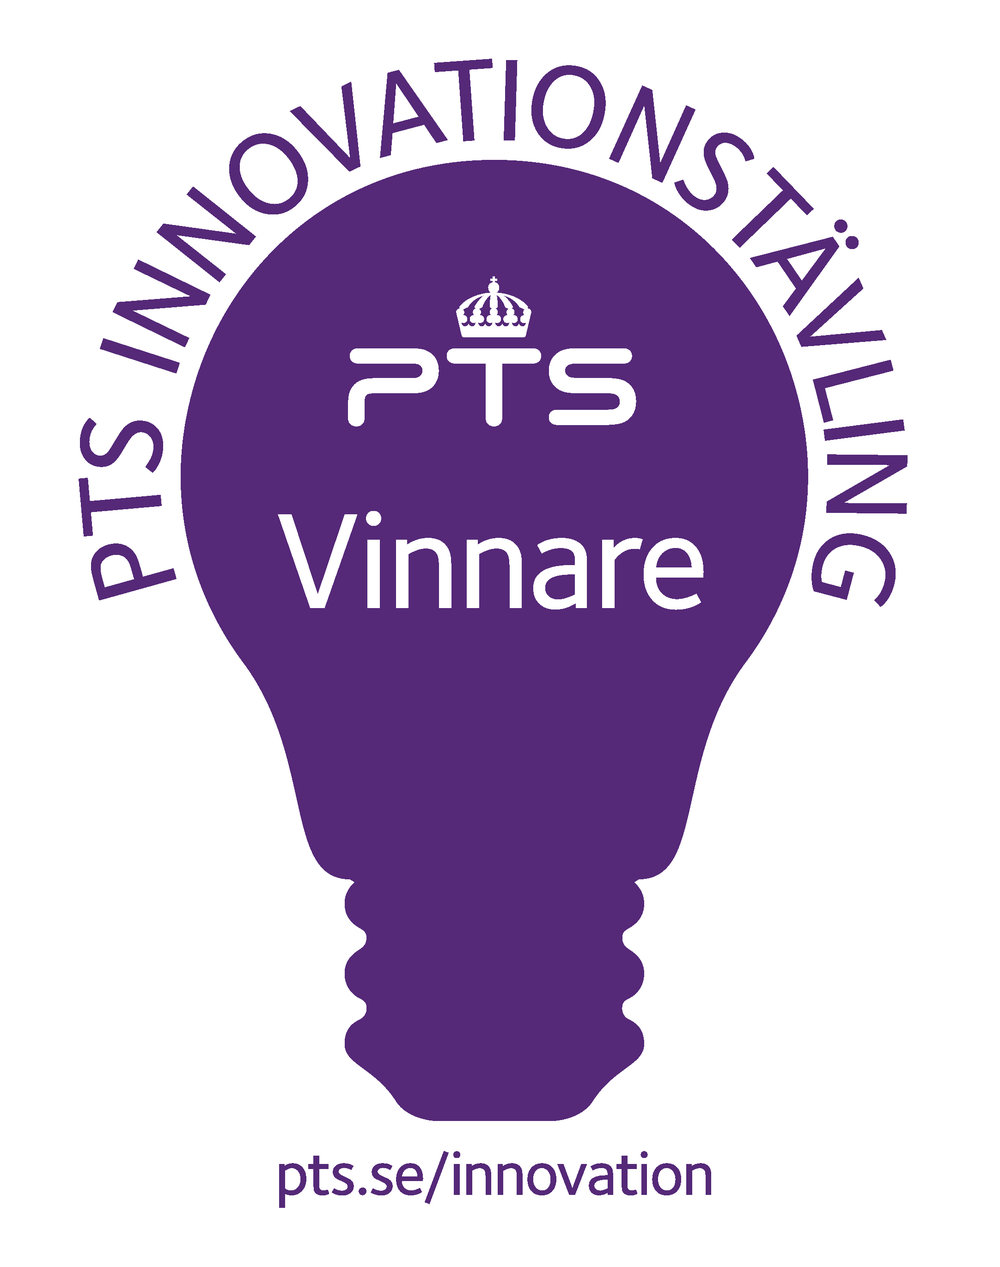 stodstampel_for_vinnare_i_pts_innovationstavling_neutralh.jpg